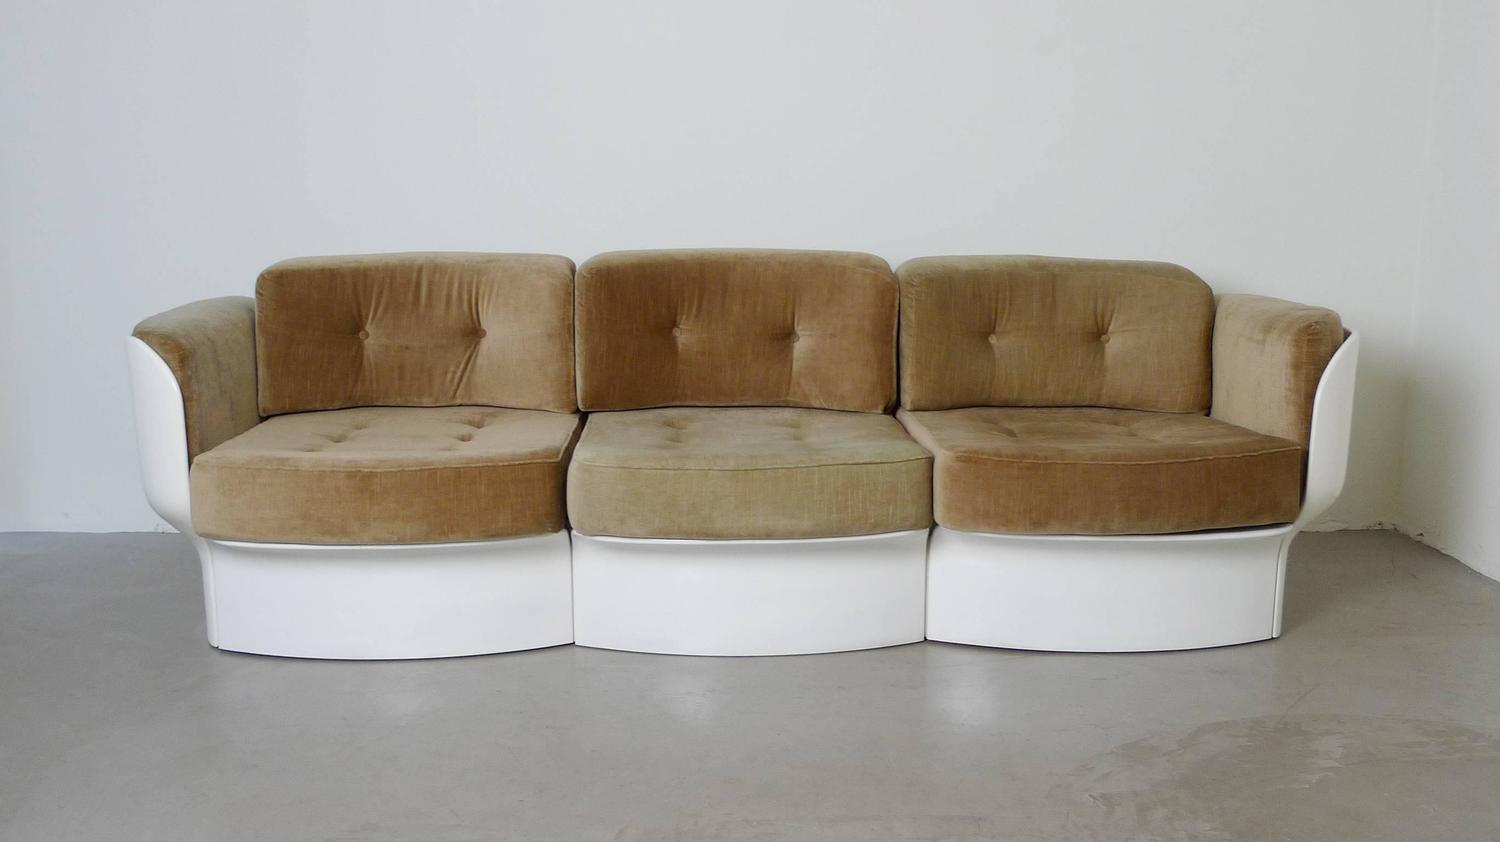 prototype of a futuristic sofa ensemble by peter ghyczy germany 1970s at 1stdibs. Black Bedroom Furniture Sets. Home Design Ideas